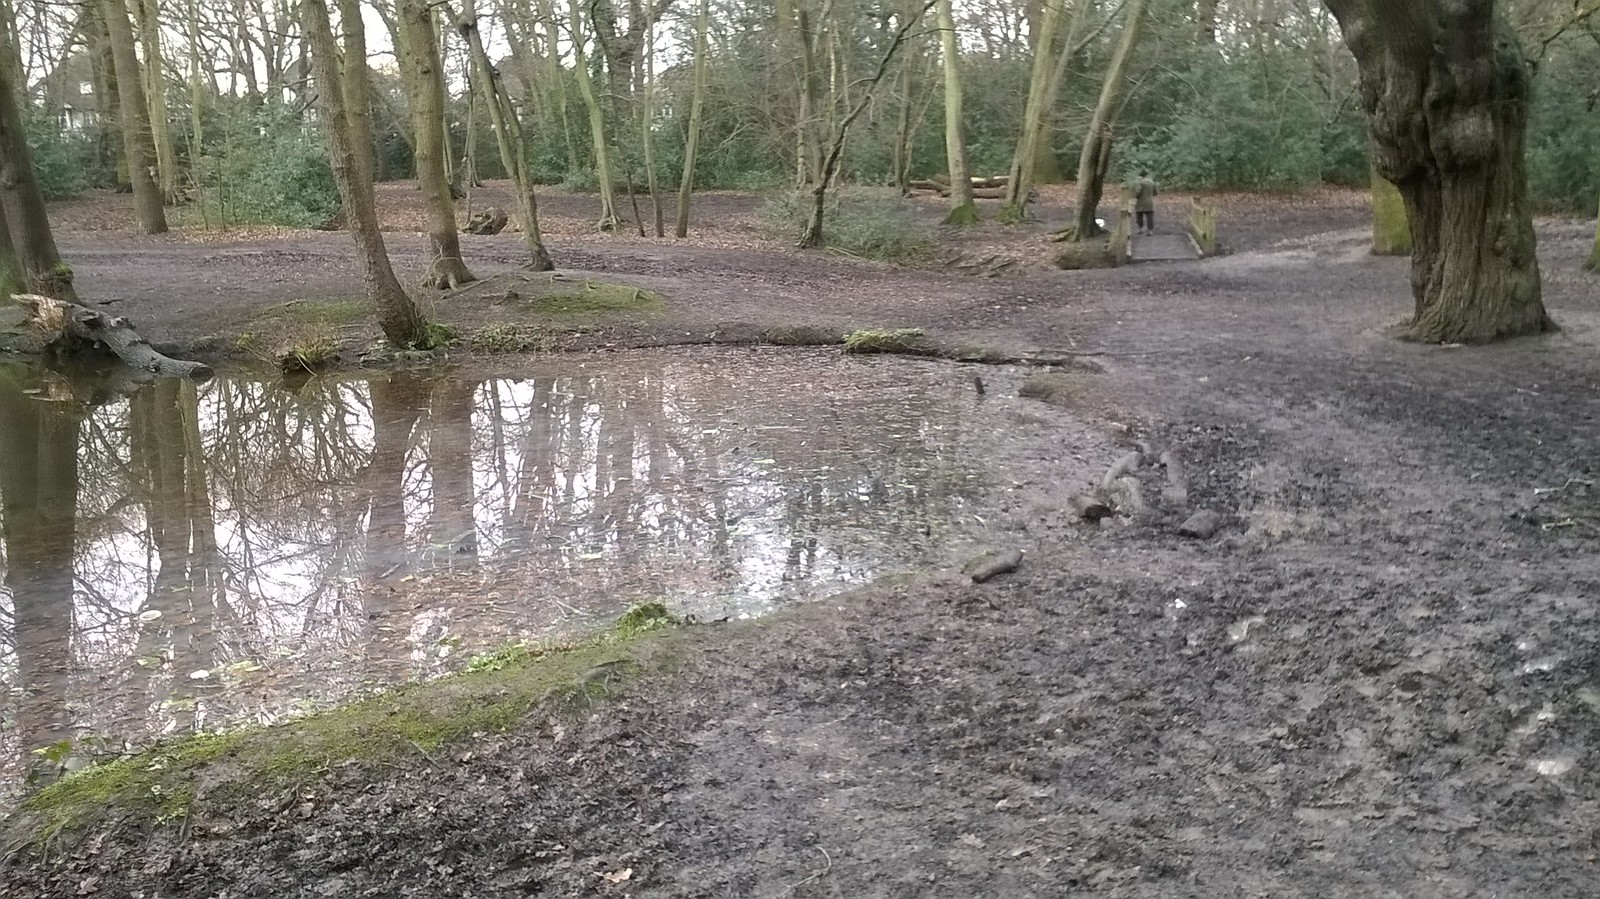 Pool's end near Chingford Muddy Epping Forest